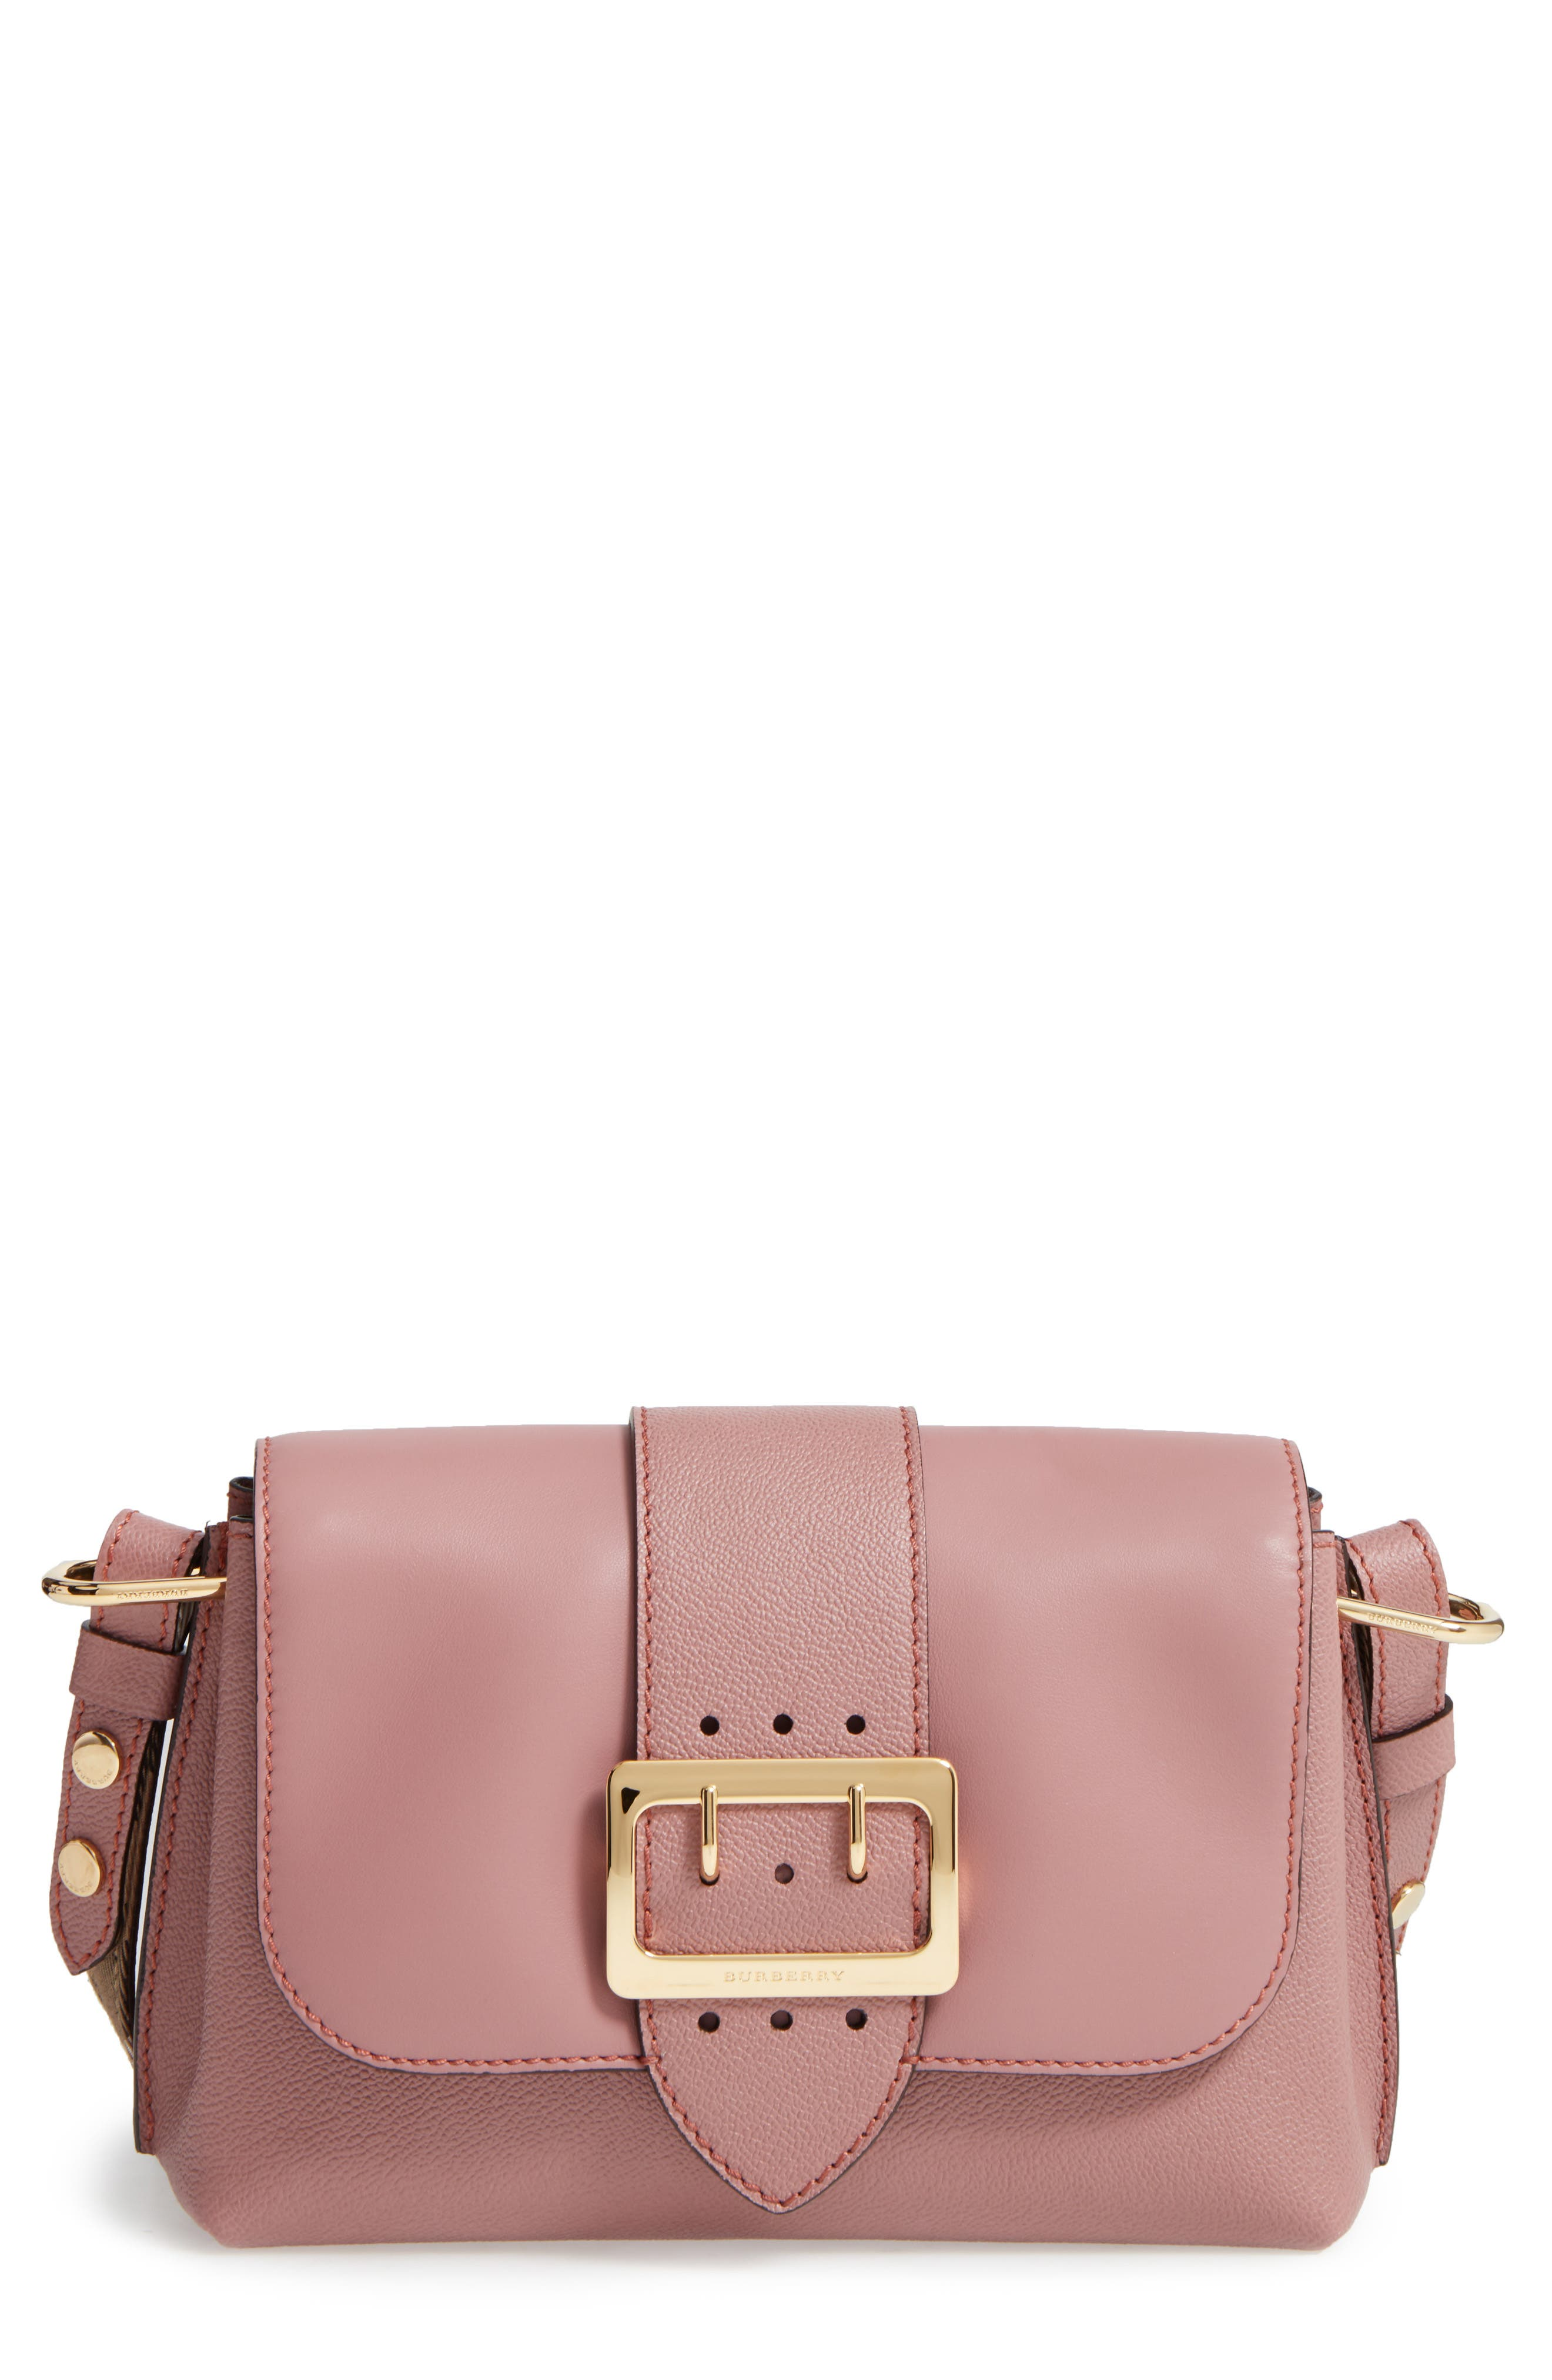 Main Image - Burberry Small Medley Leather Shoulder Bag